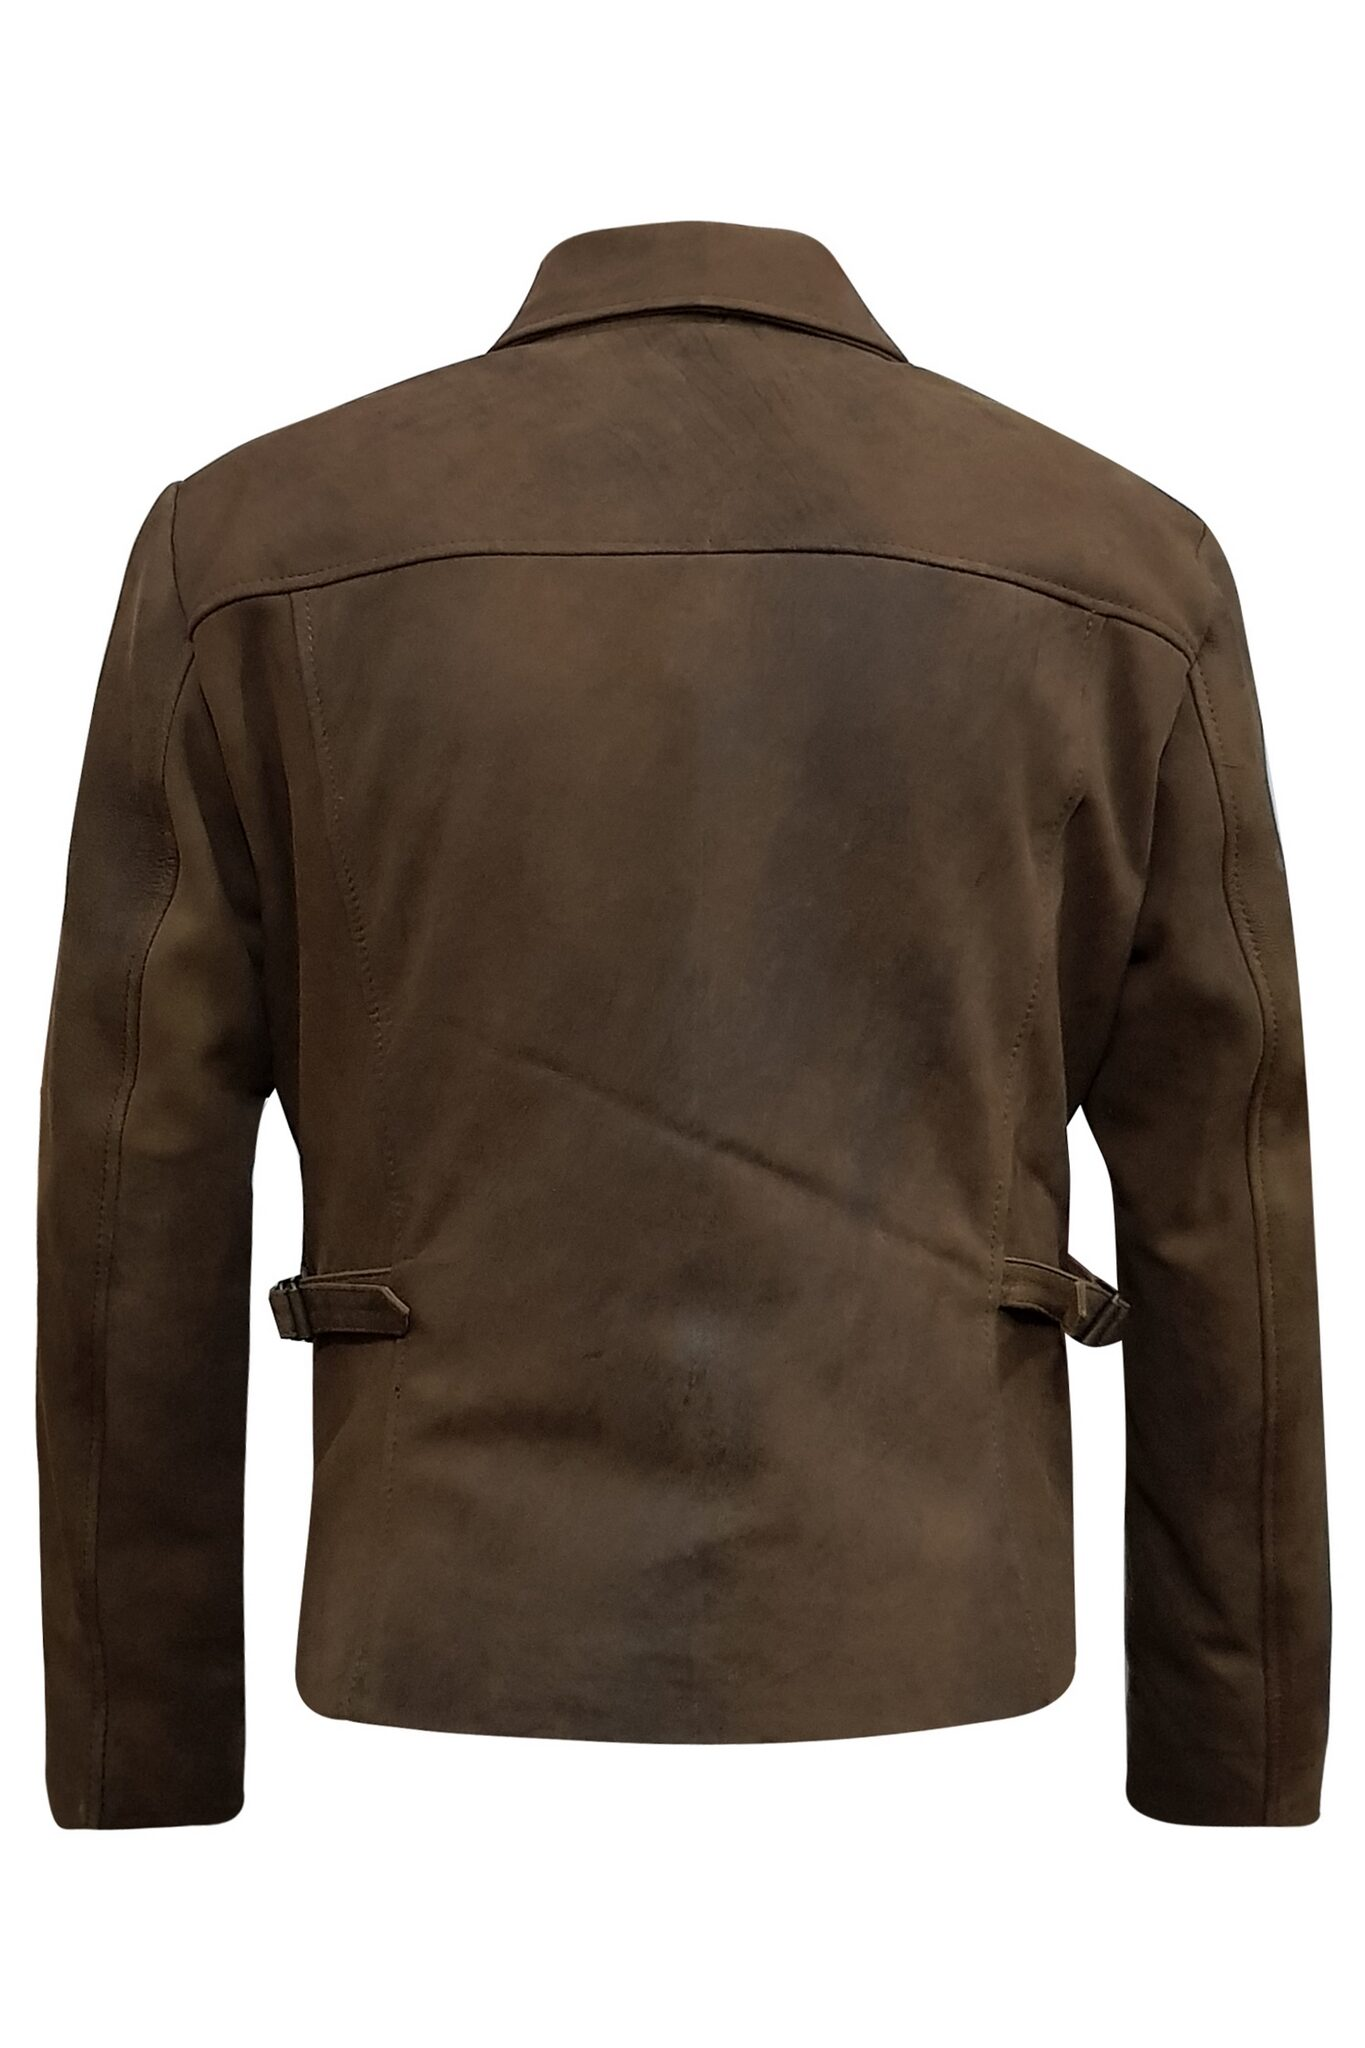 Mens Vintage Distressed Genuine Leather Jacket